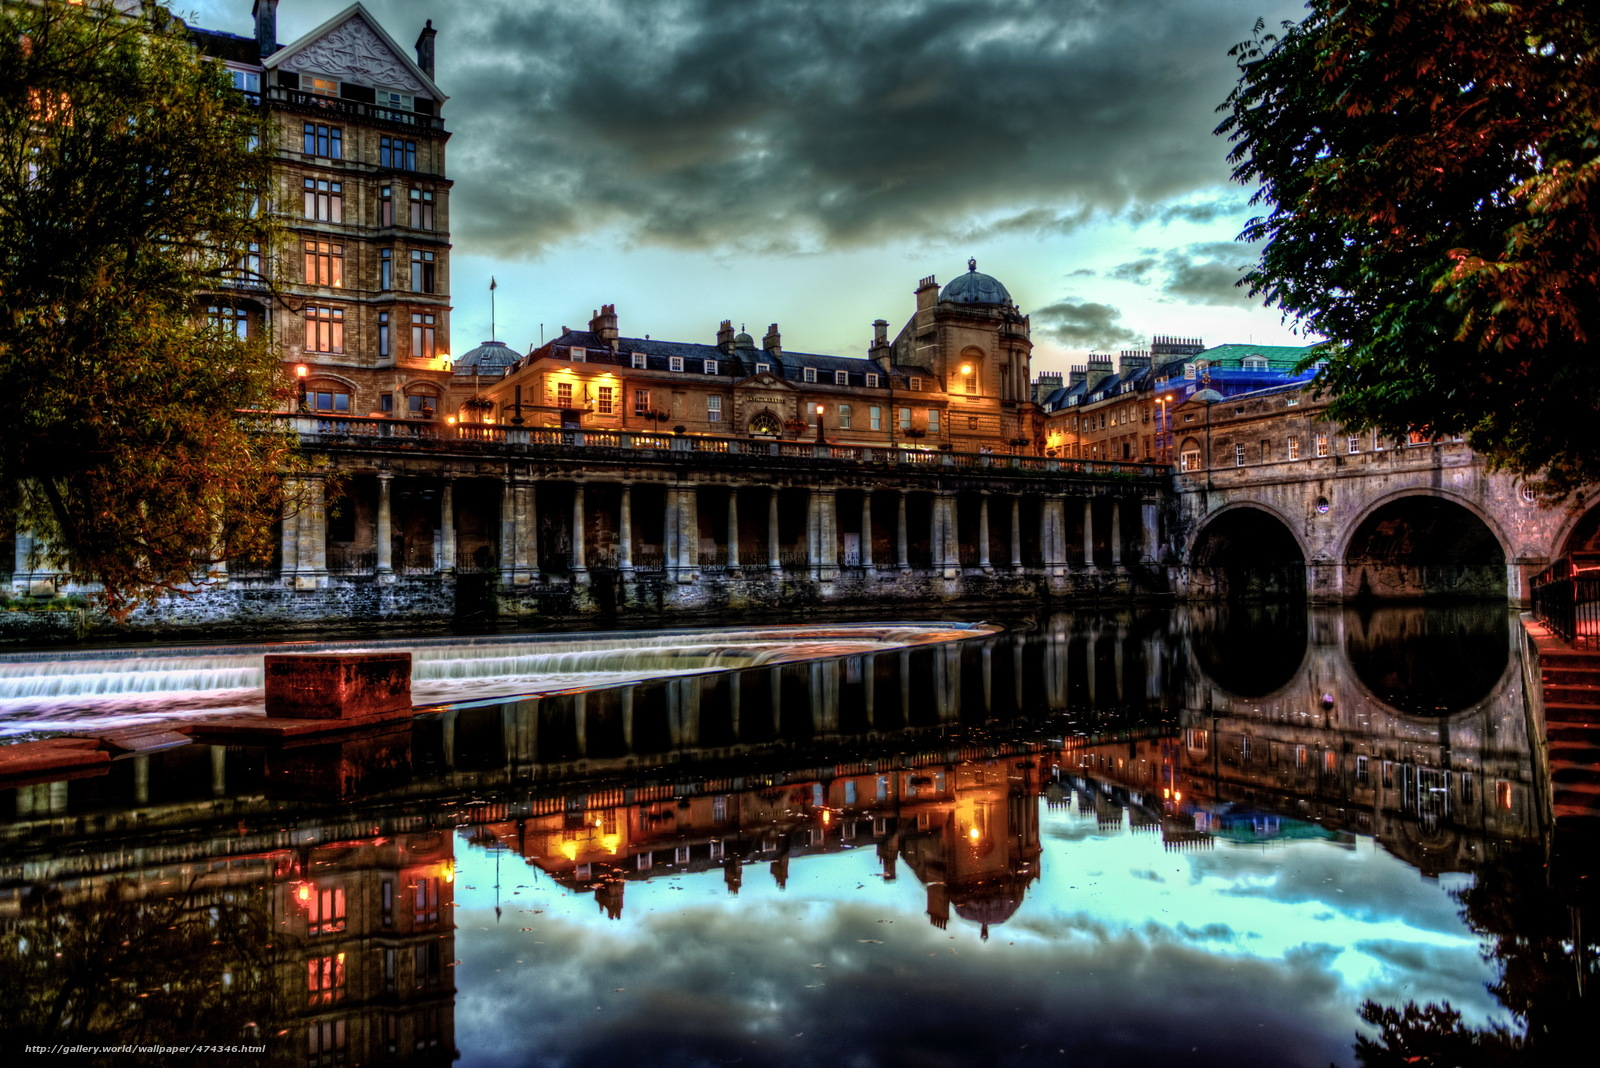 Download wallpaper cities england england river free for Wallpaper home england